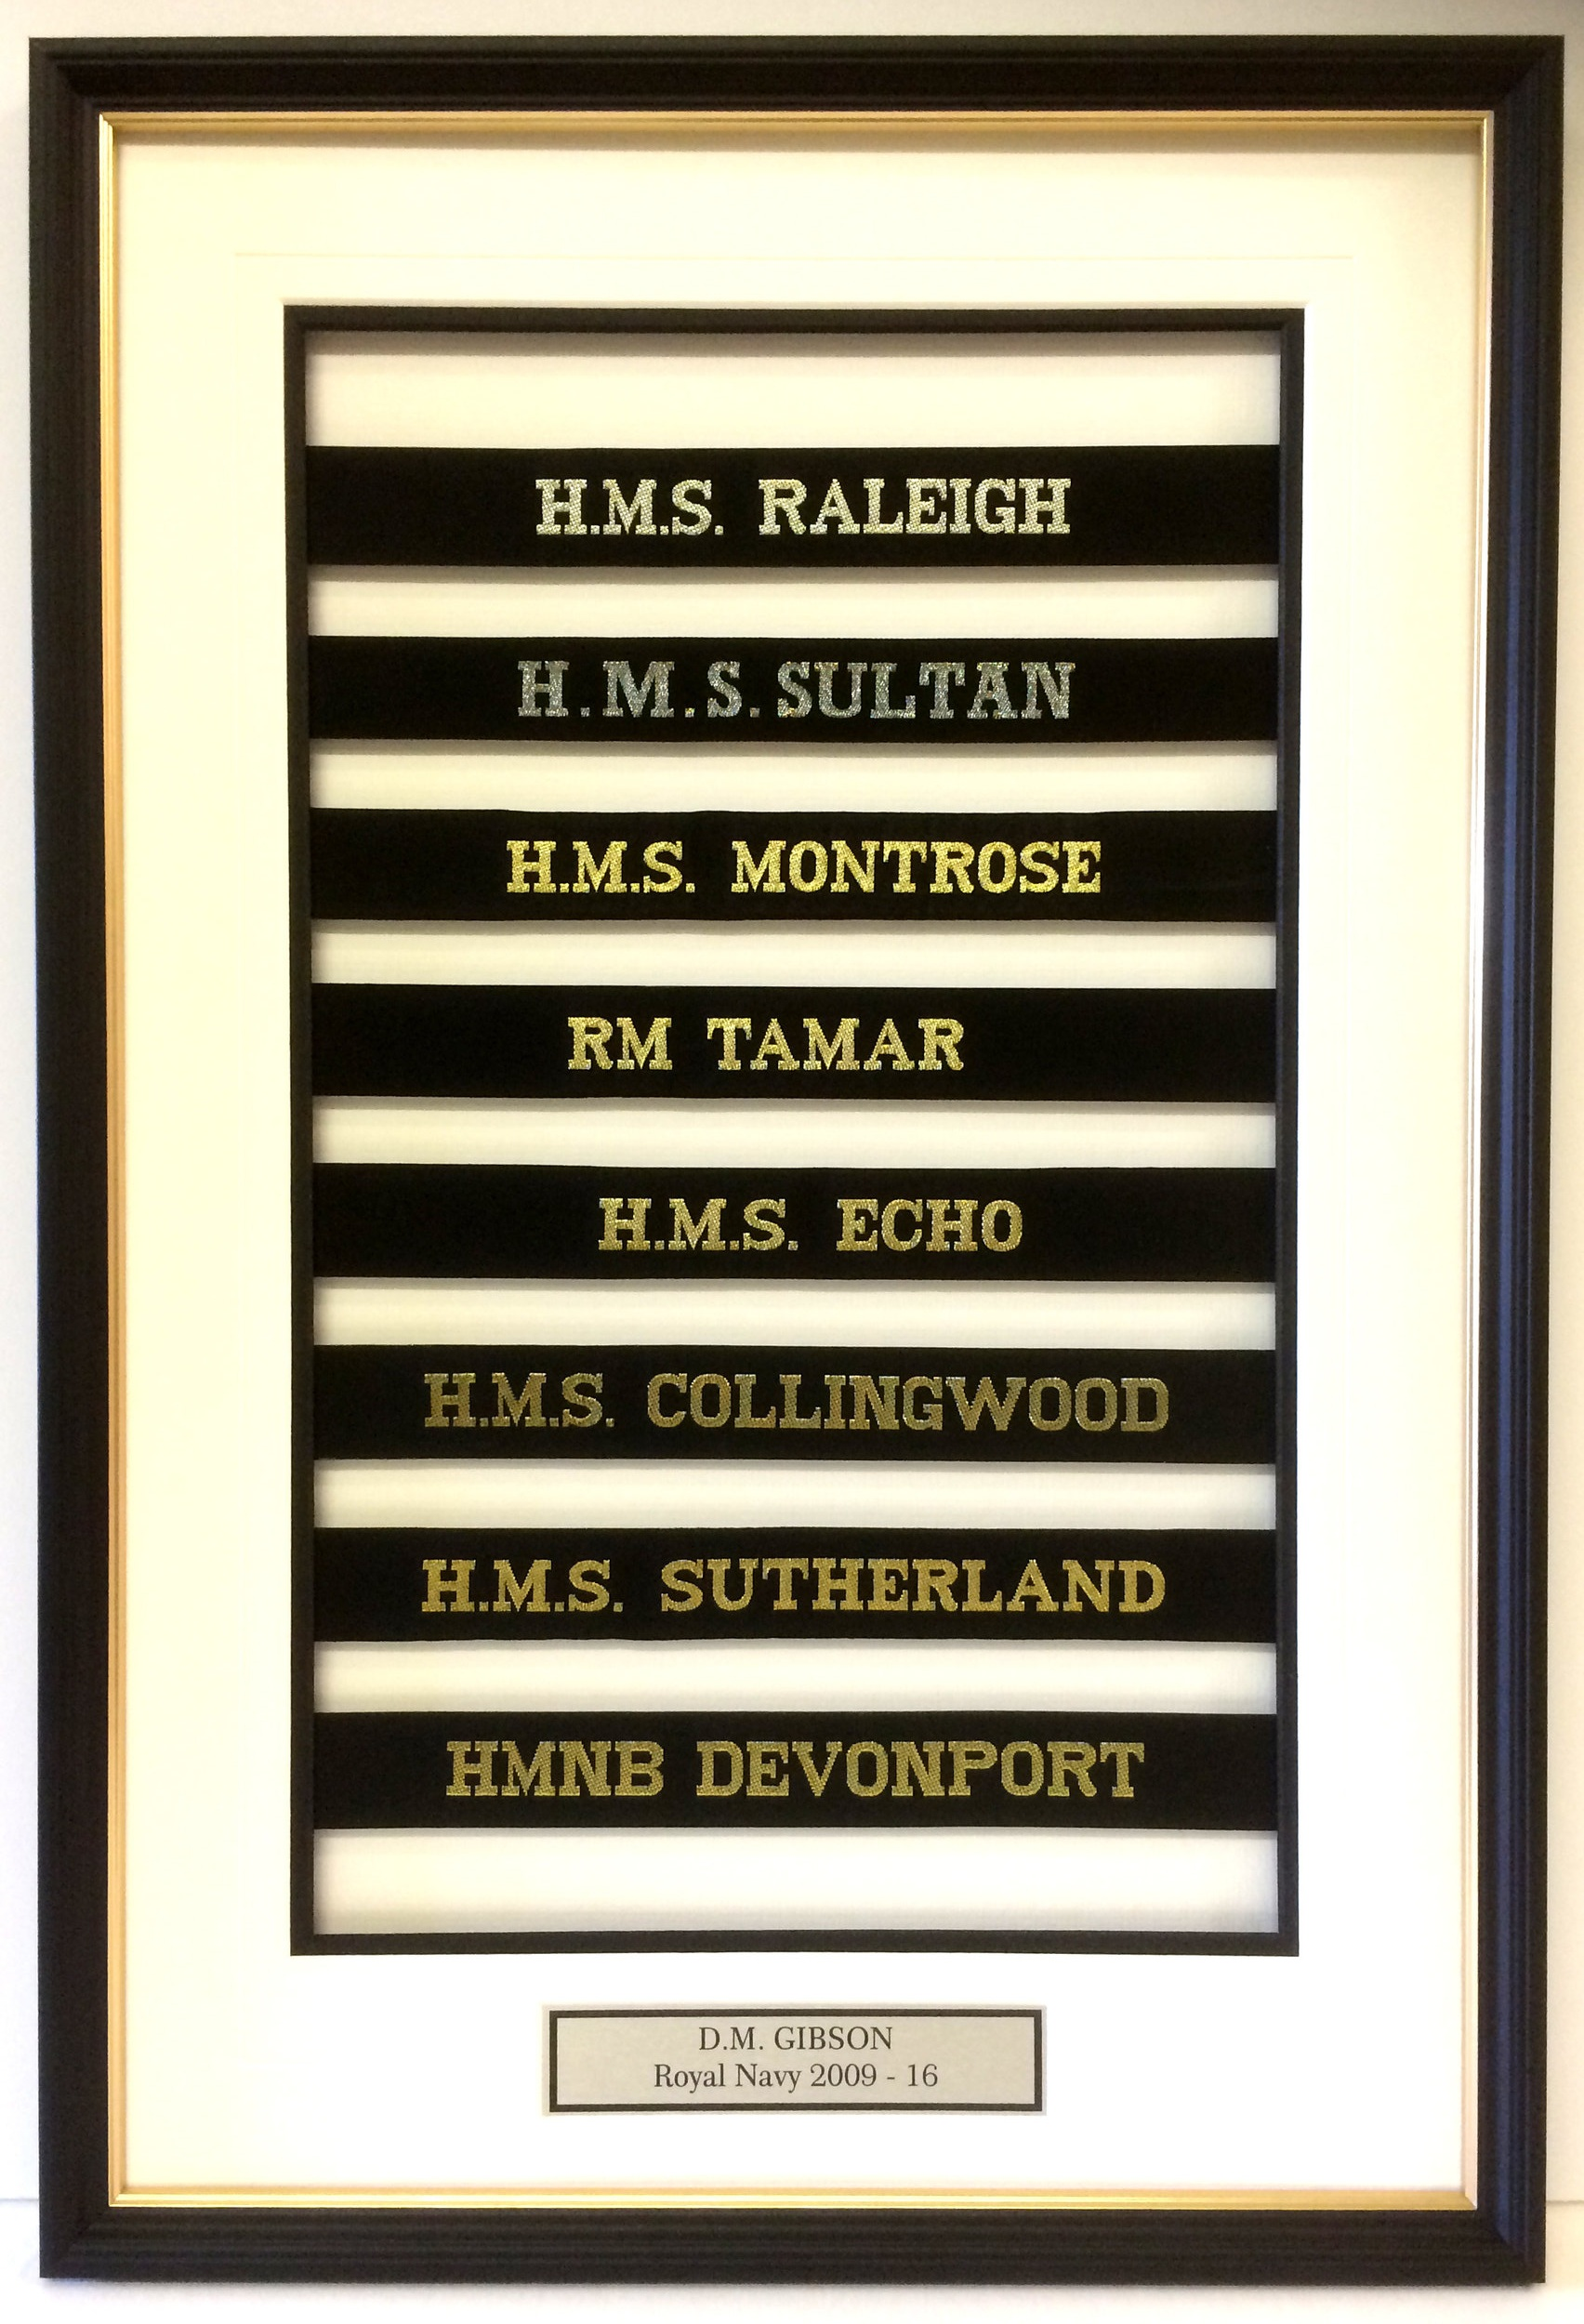 Royal Navy cap tallies held into place and aligned perfectly